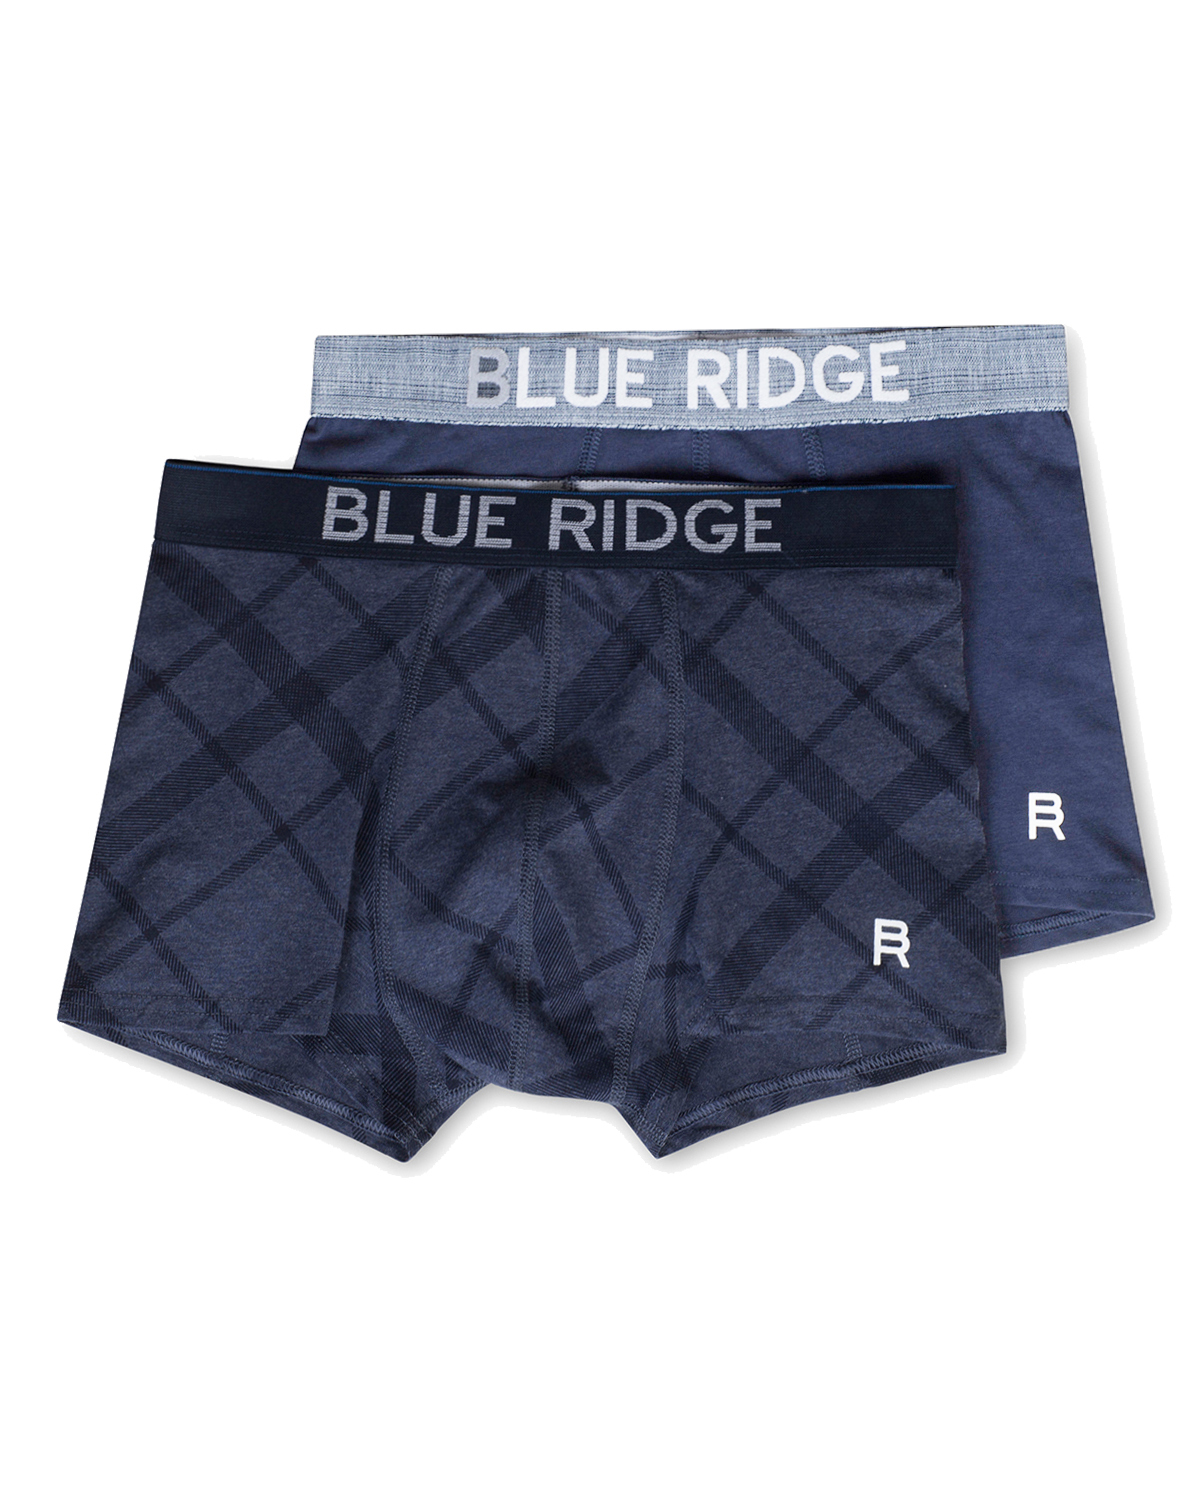 Heren blue ridge boxershort 2-pack